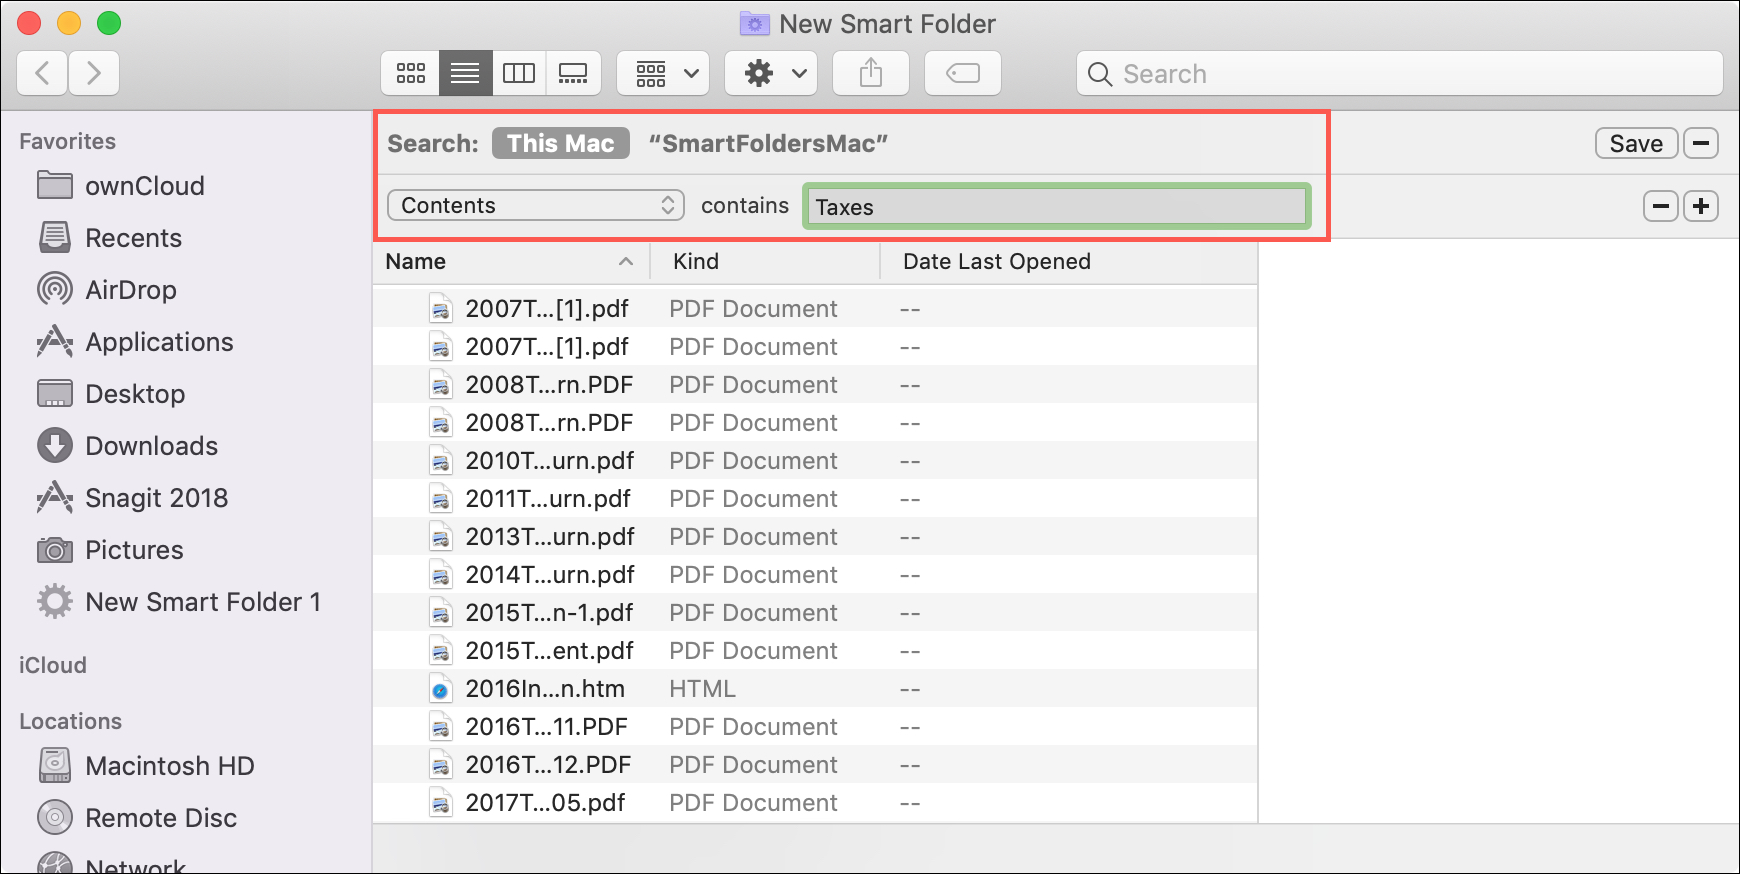 Smart Folder for Contents